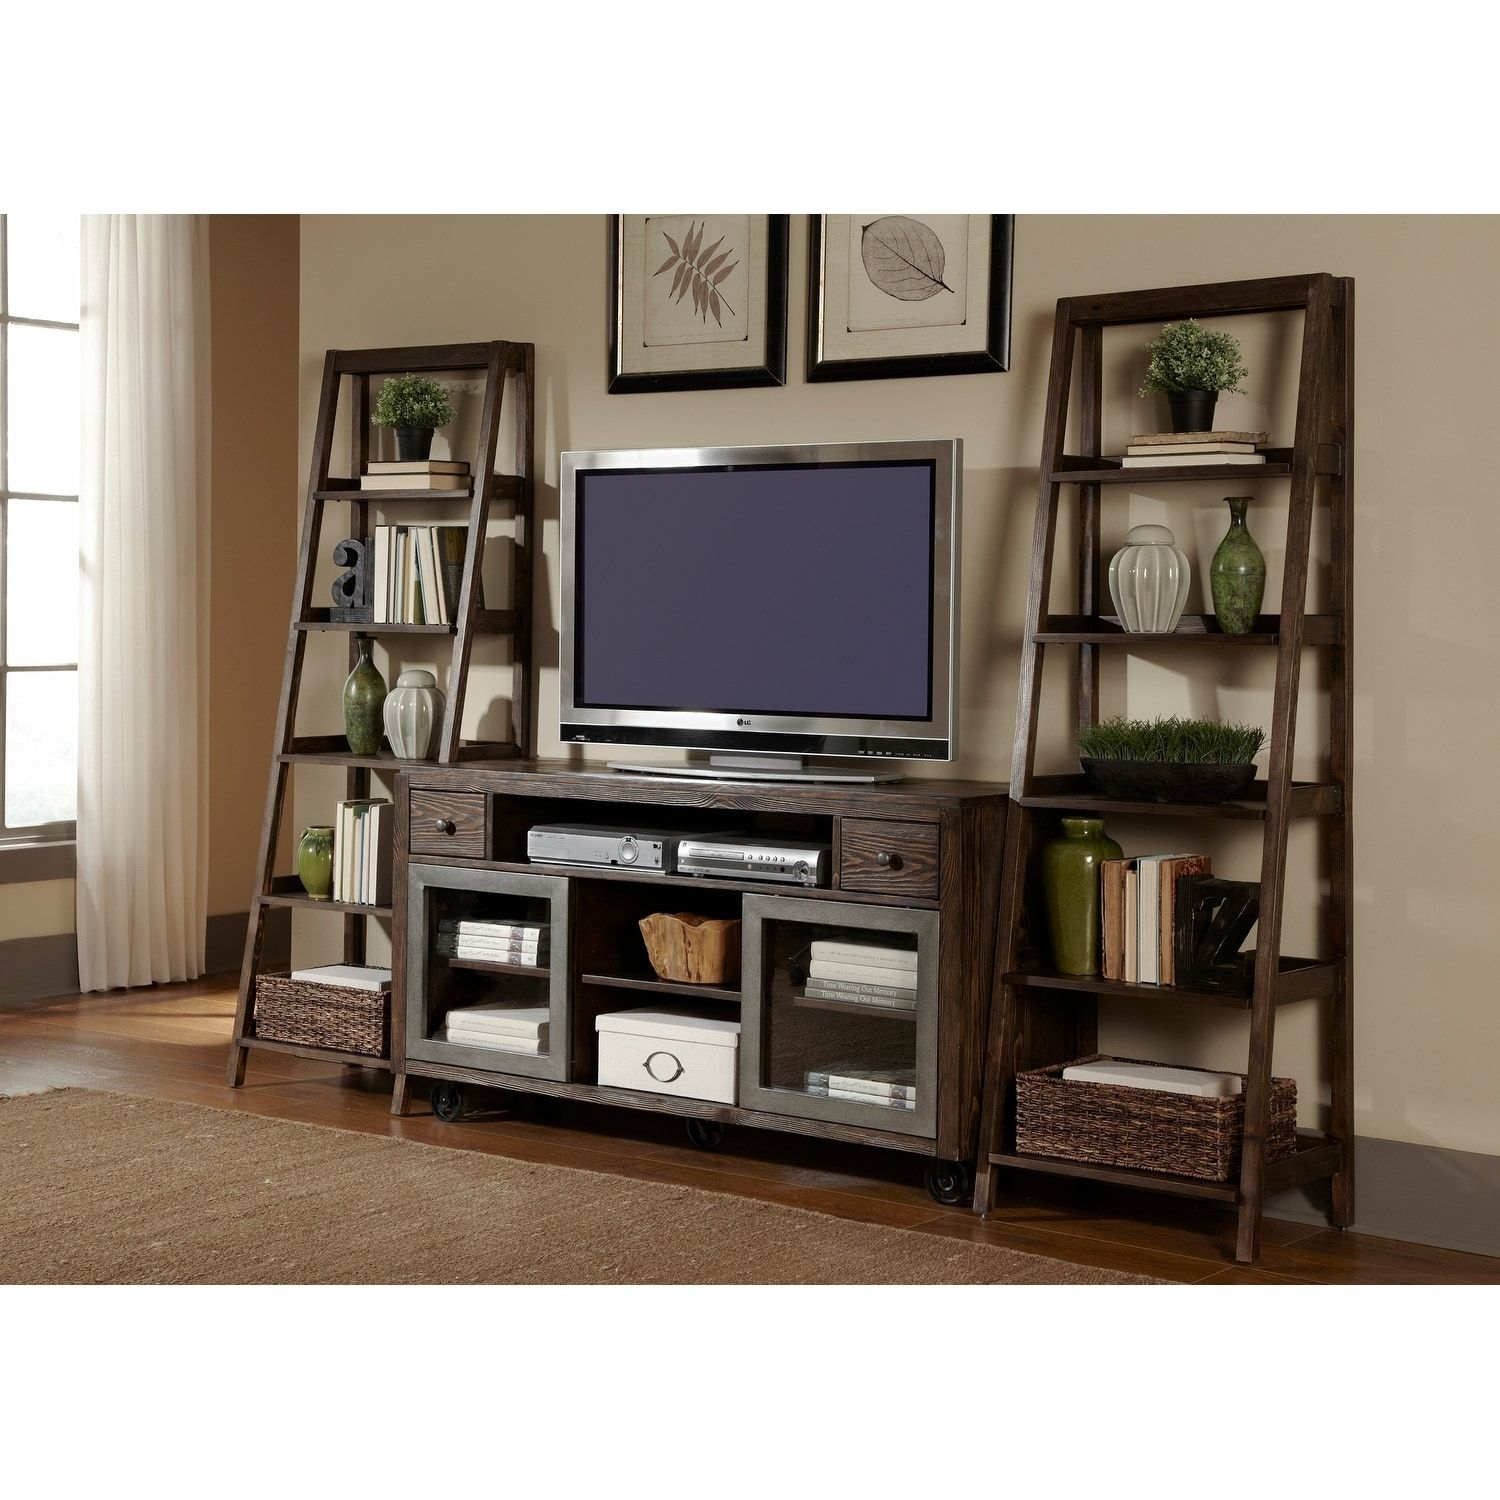 Liberty avignon rustic brown and metal leaning bookcase pier